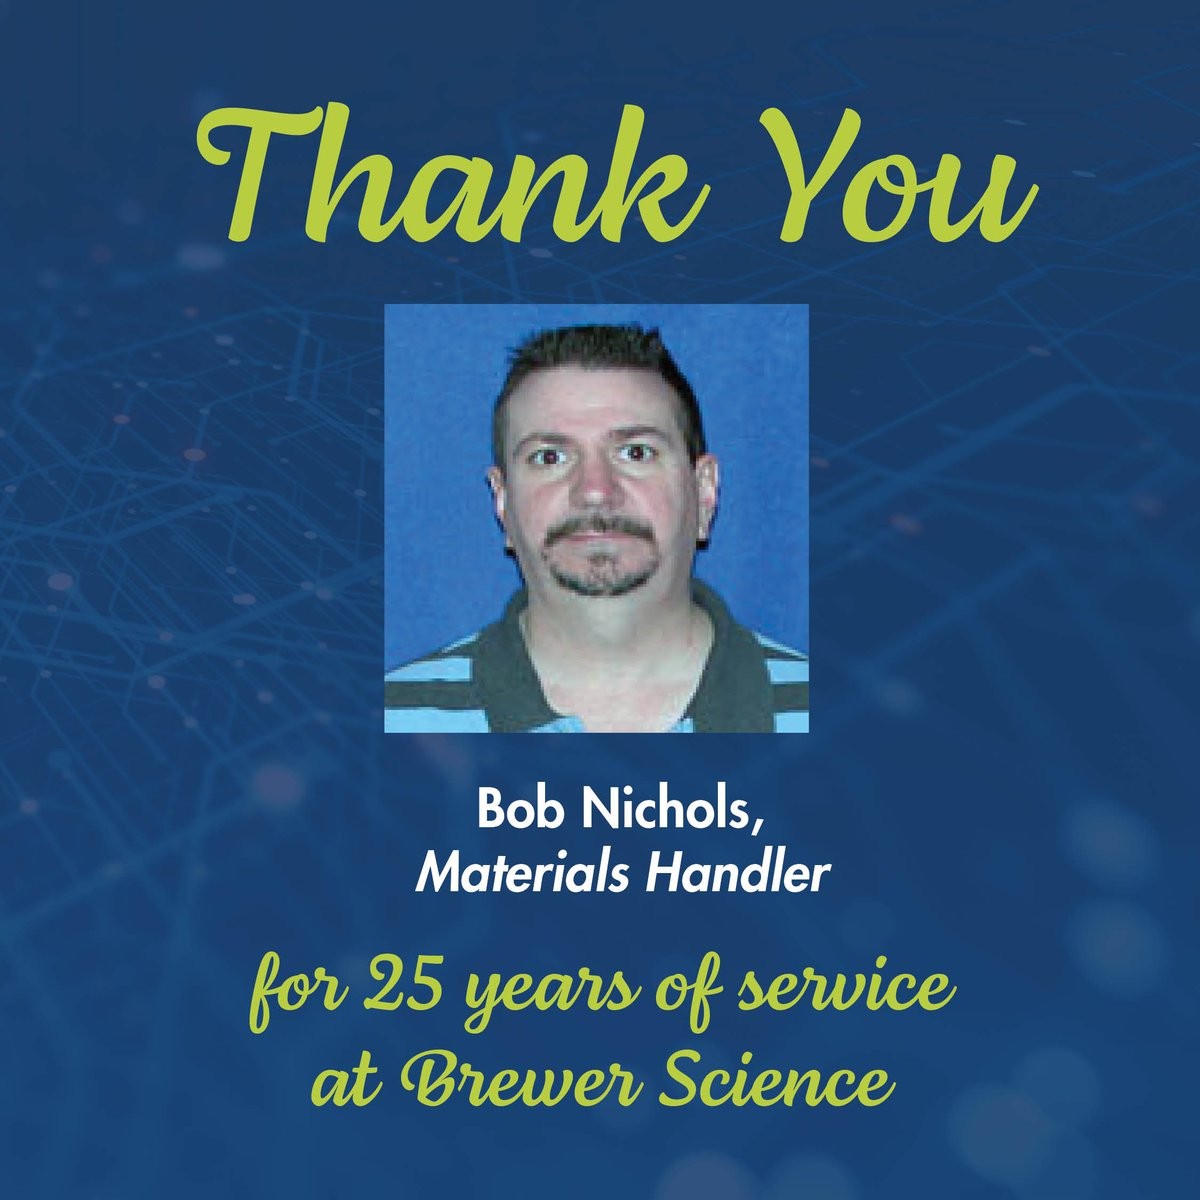 test Twitter Media - Today, we would like to congratulate Bob Nichols for 25 years of service at Brewer Science. Thank you, Bob, for your dedication and hard work. . . . #EmployeeAppreciation #EmployeeAnniversary #WorkAnniversary #dedication #hardwork #appreciation #congratulation https://t.co/uBVwBEKsPY